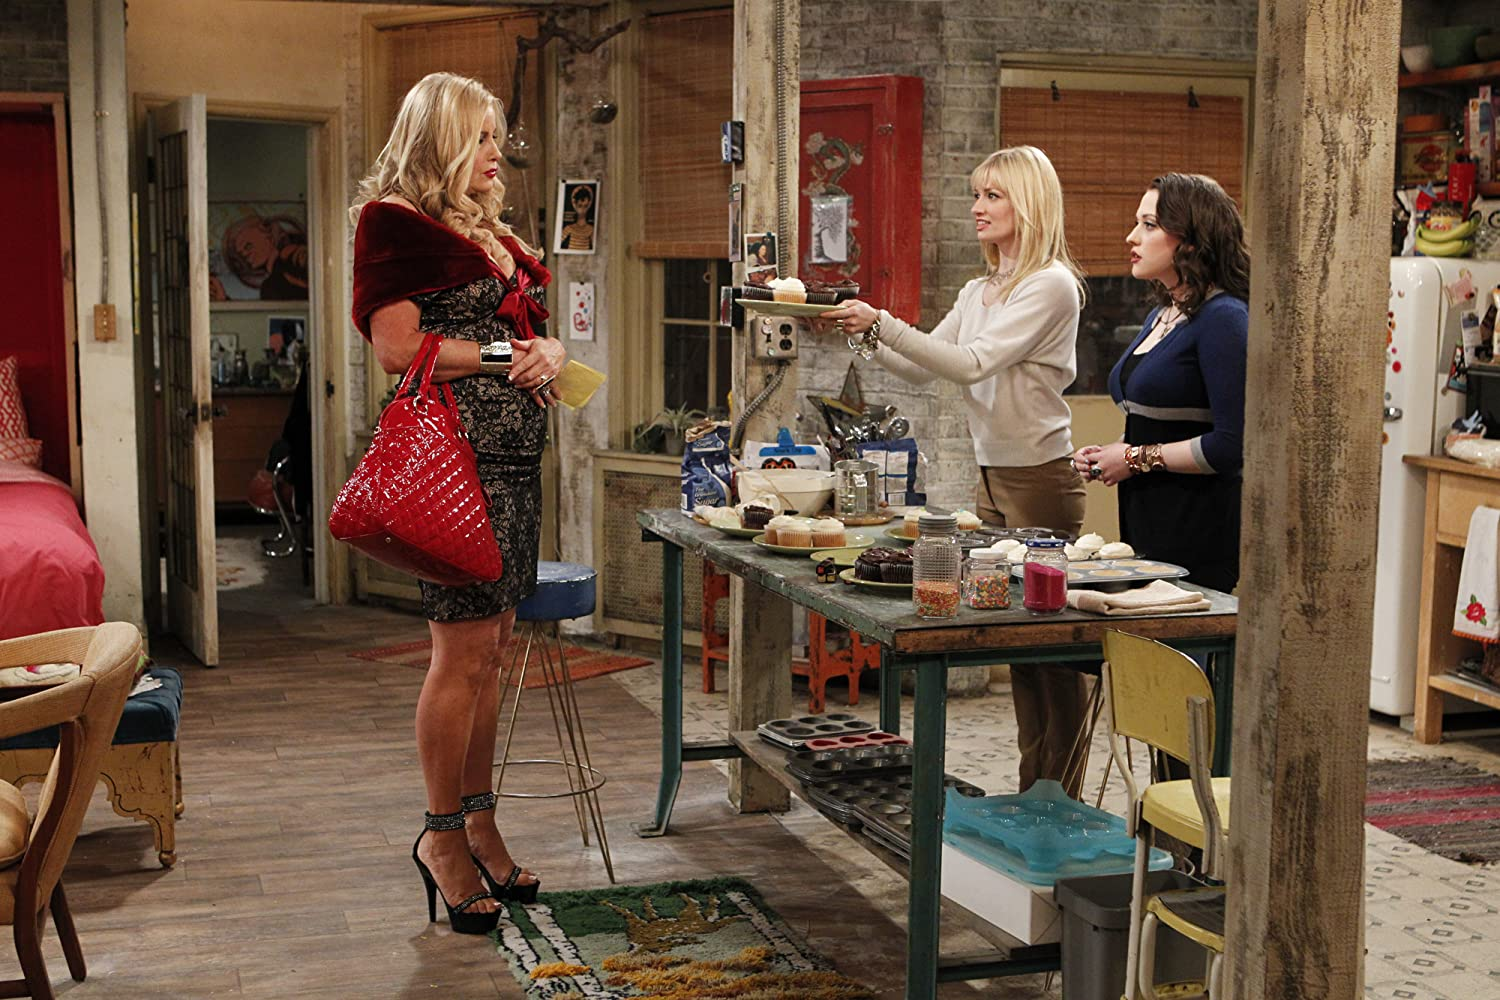 Jennifer Coolidge, Kat Dennings, and Beth Behrs in 2 Broke Girls (2011)